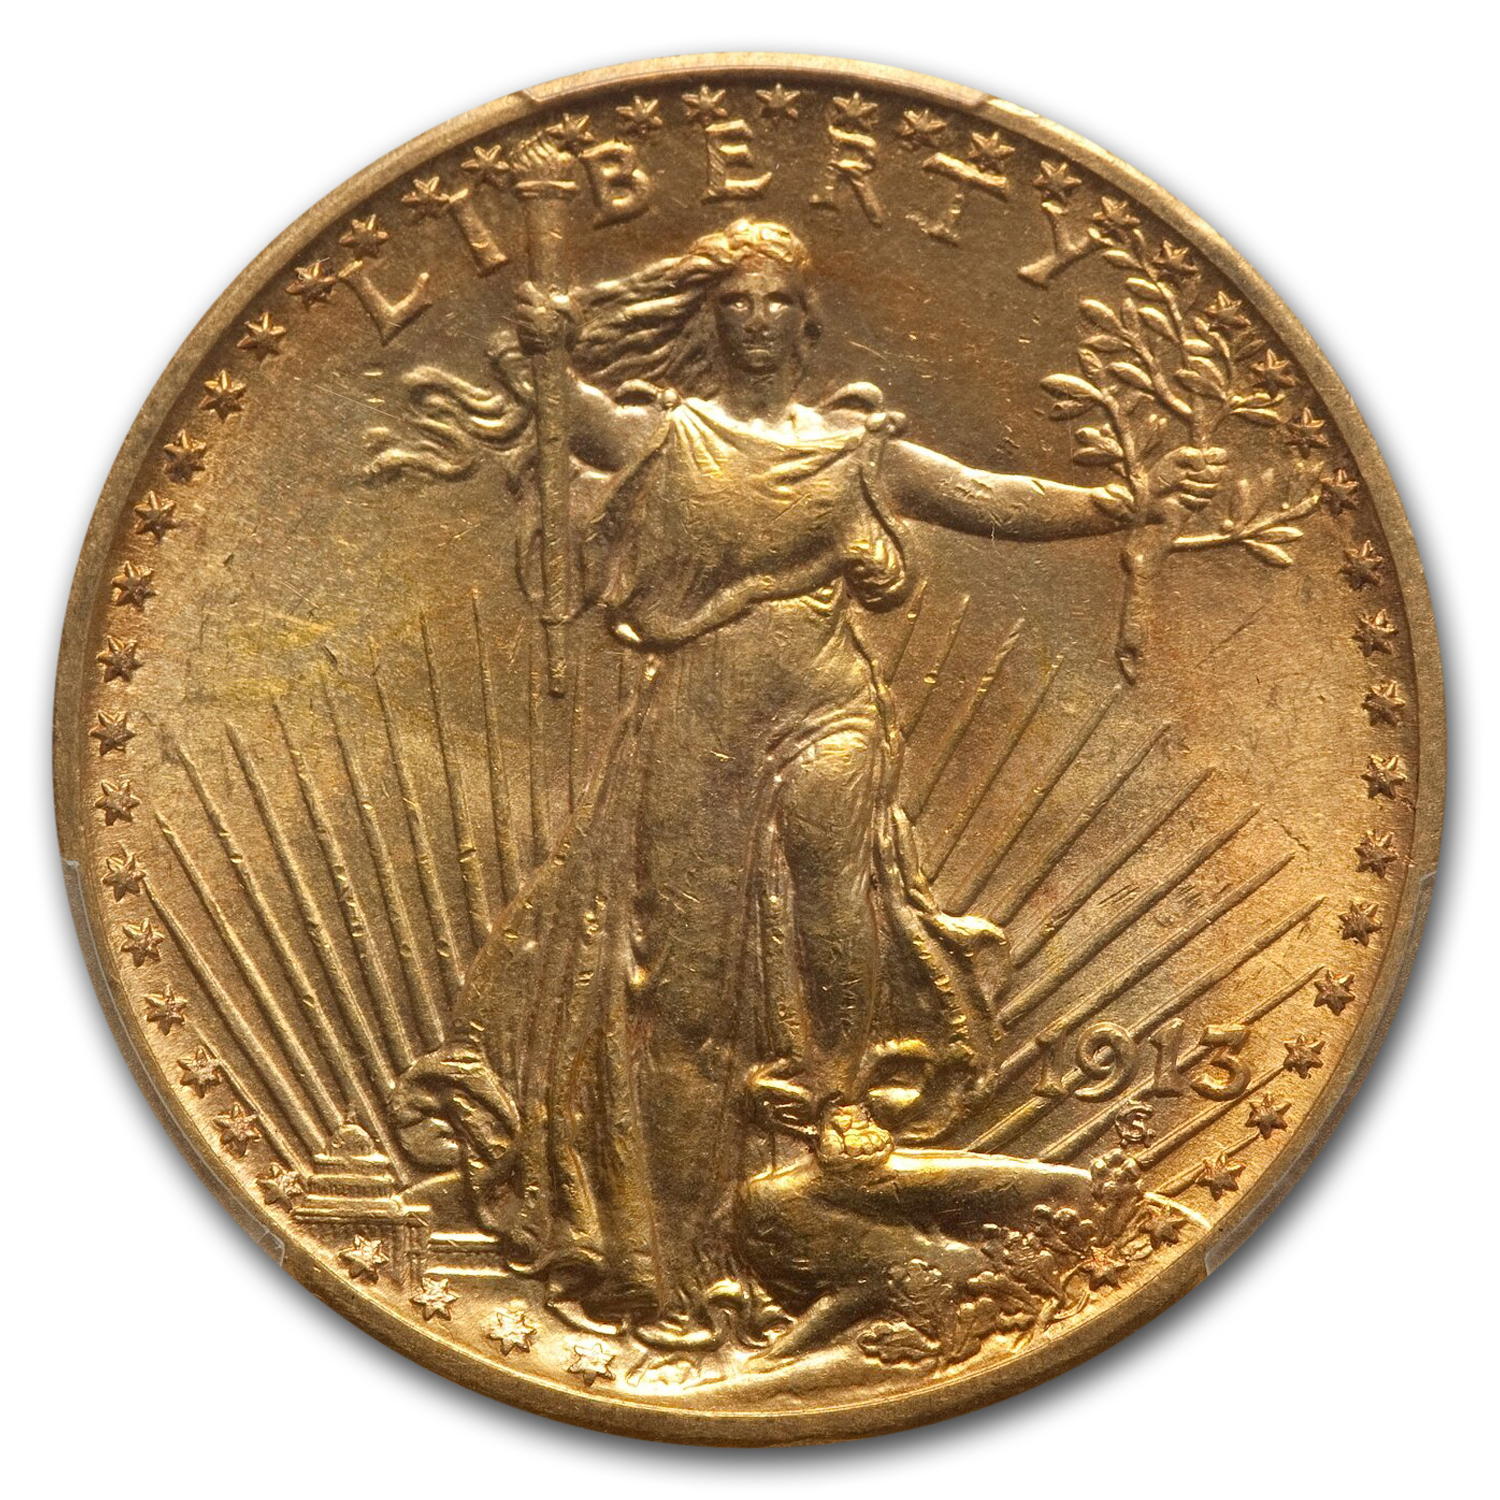 1913 $20 St. Gaudens Gold Double Eagle MS-64 PCGS